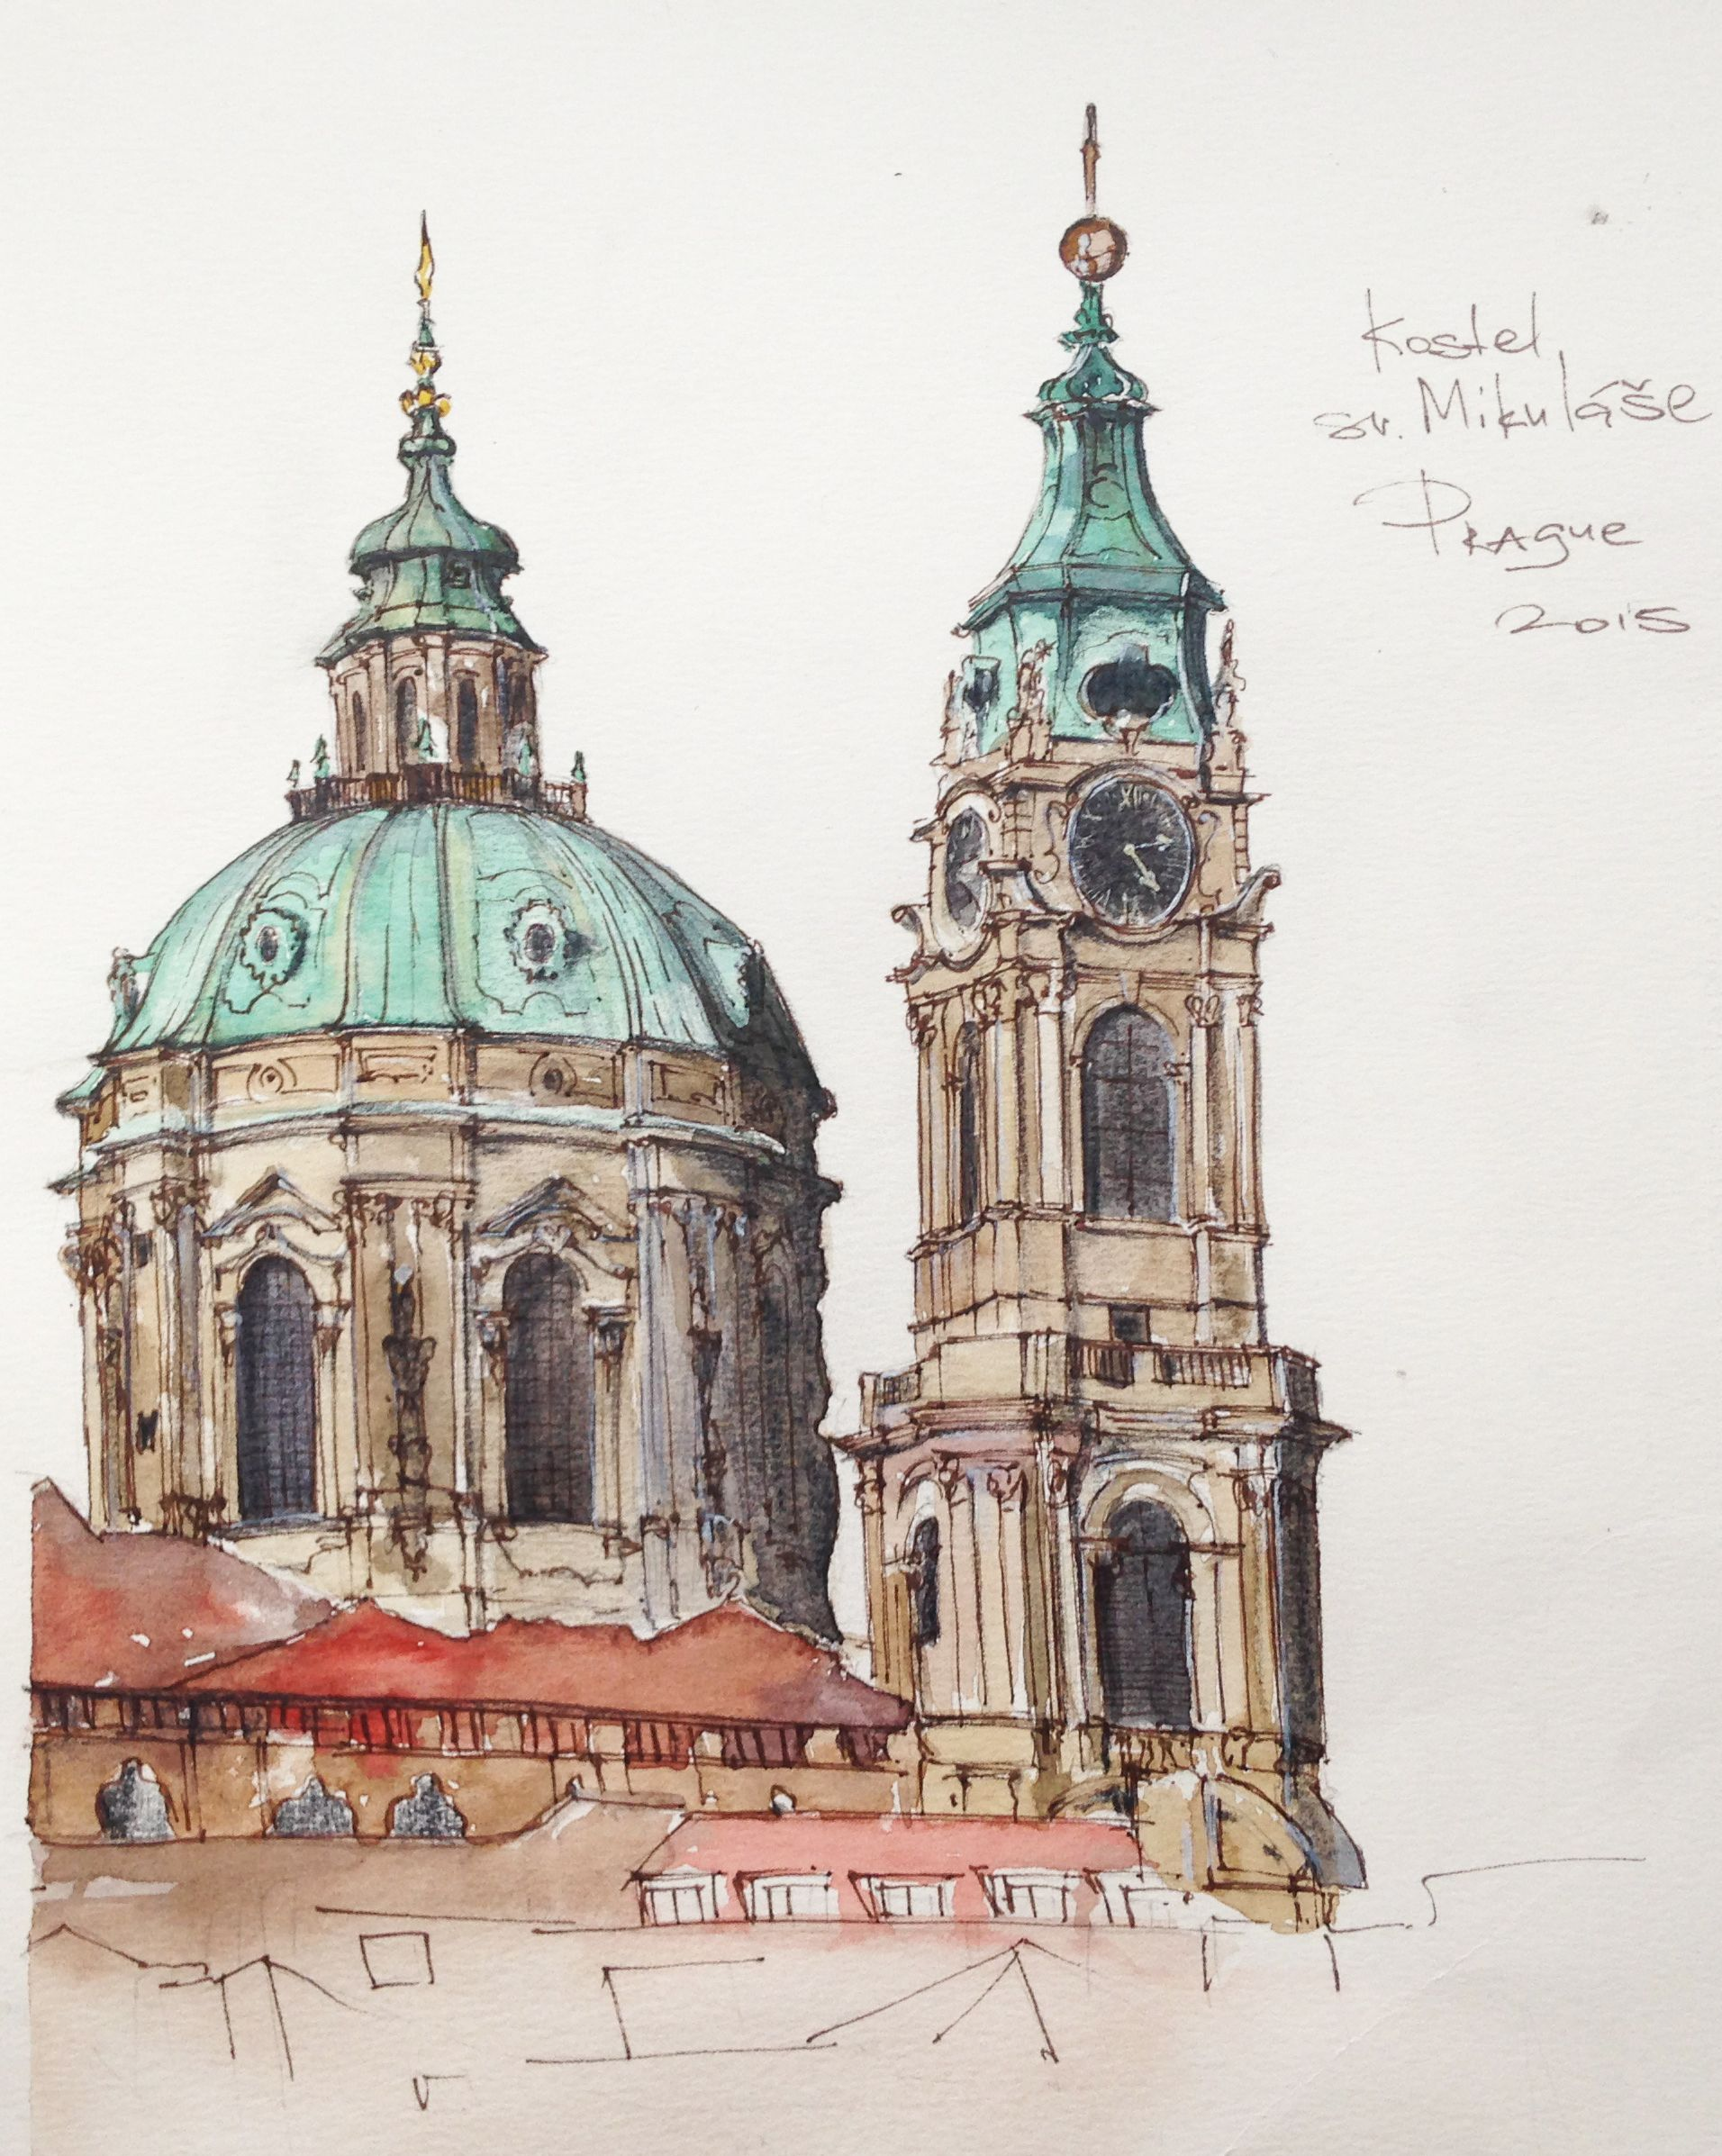 Prague Czech Republic Watercolor Pen Graphic Sketch Design